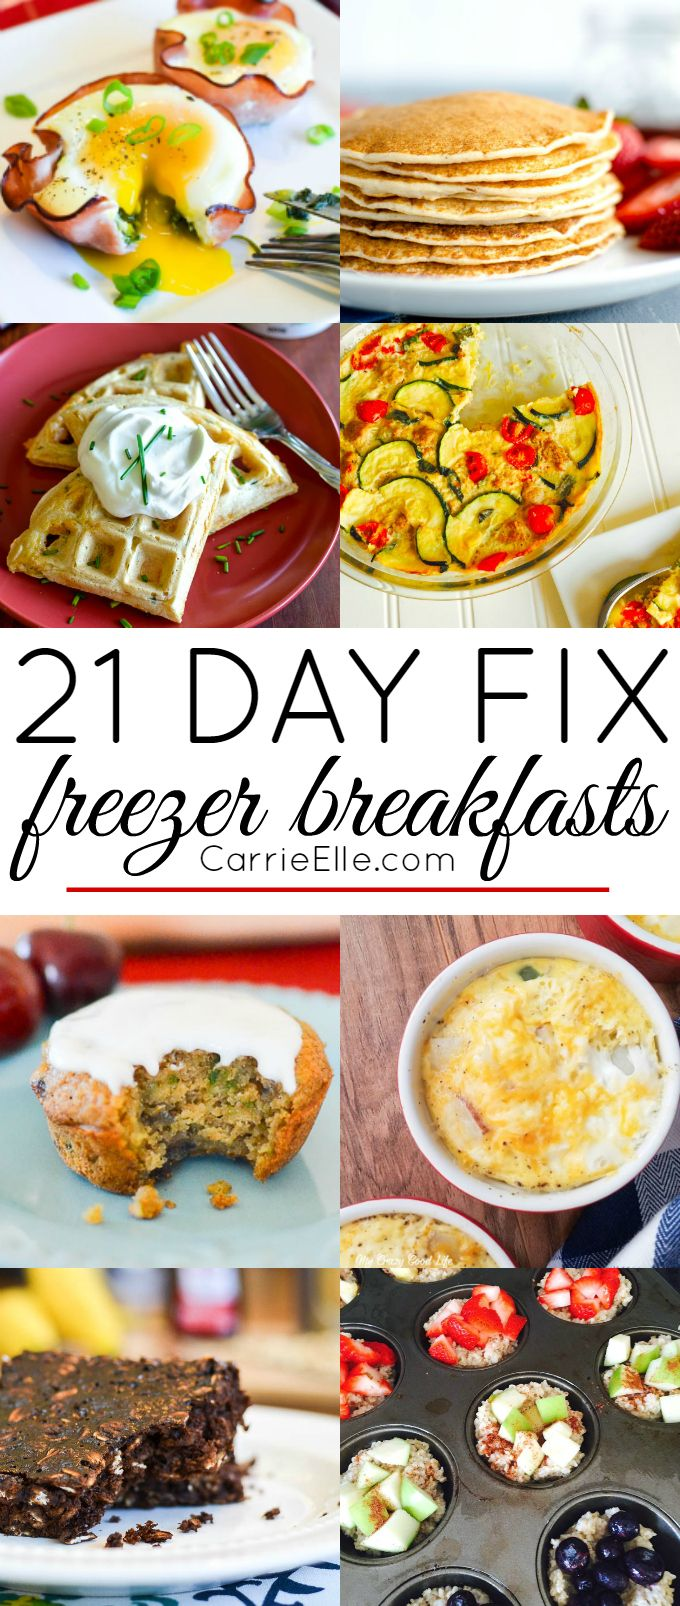 21 Day Fix Freezer Breakfasts Make These Breakfasts In Advance And Grab Them On The Go 21 Day Fix Recipes 21 Day Fix Breakfast Eat 21 Day Fix Meal Plan